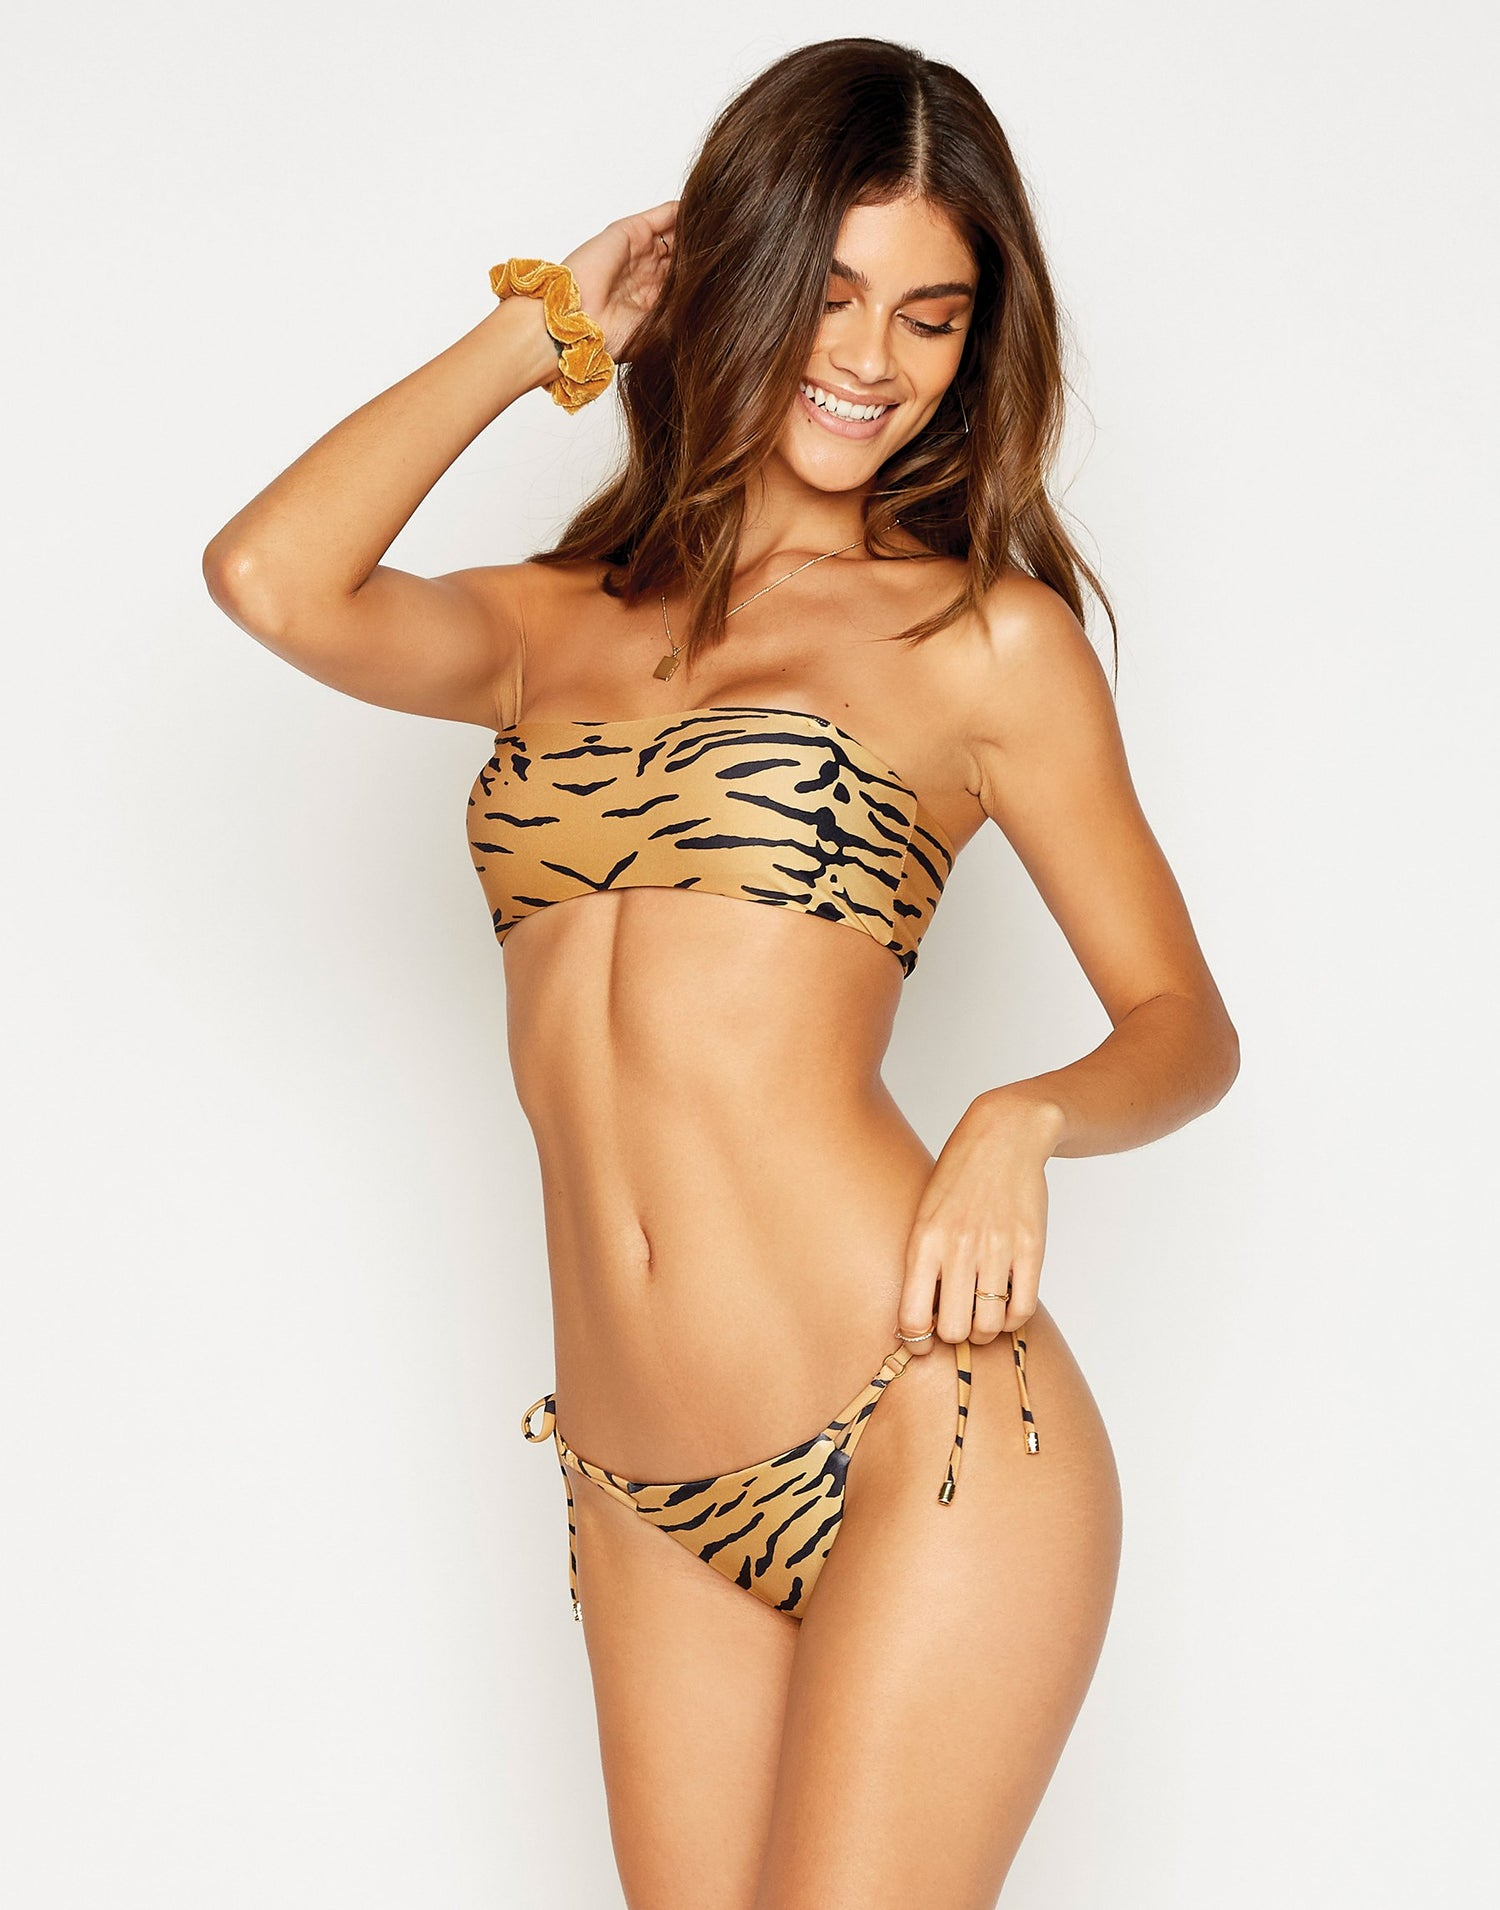 London Bralette Bikini Top in Tiger without Straps - front view